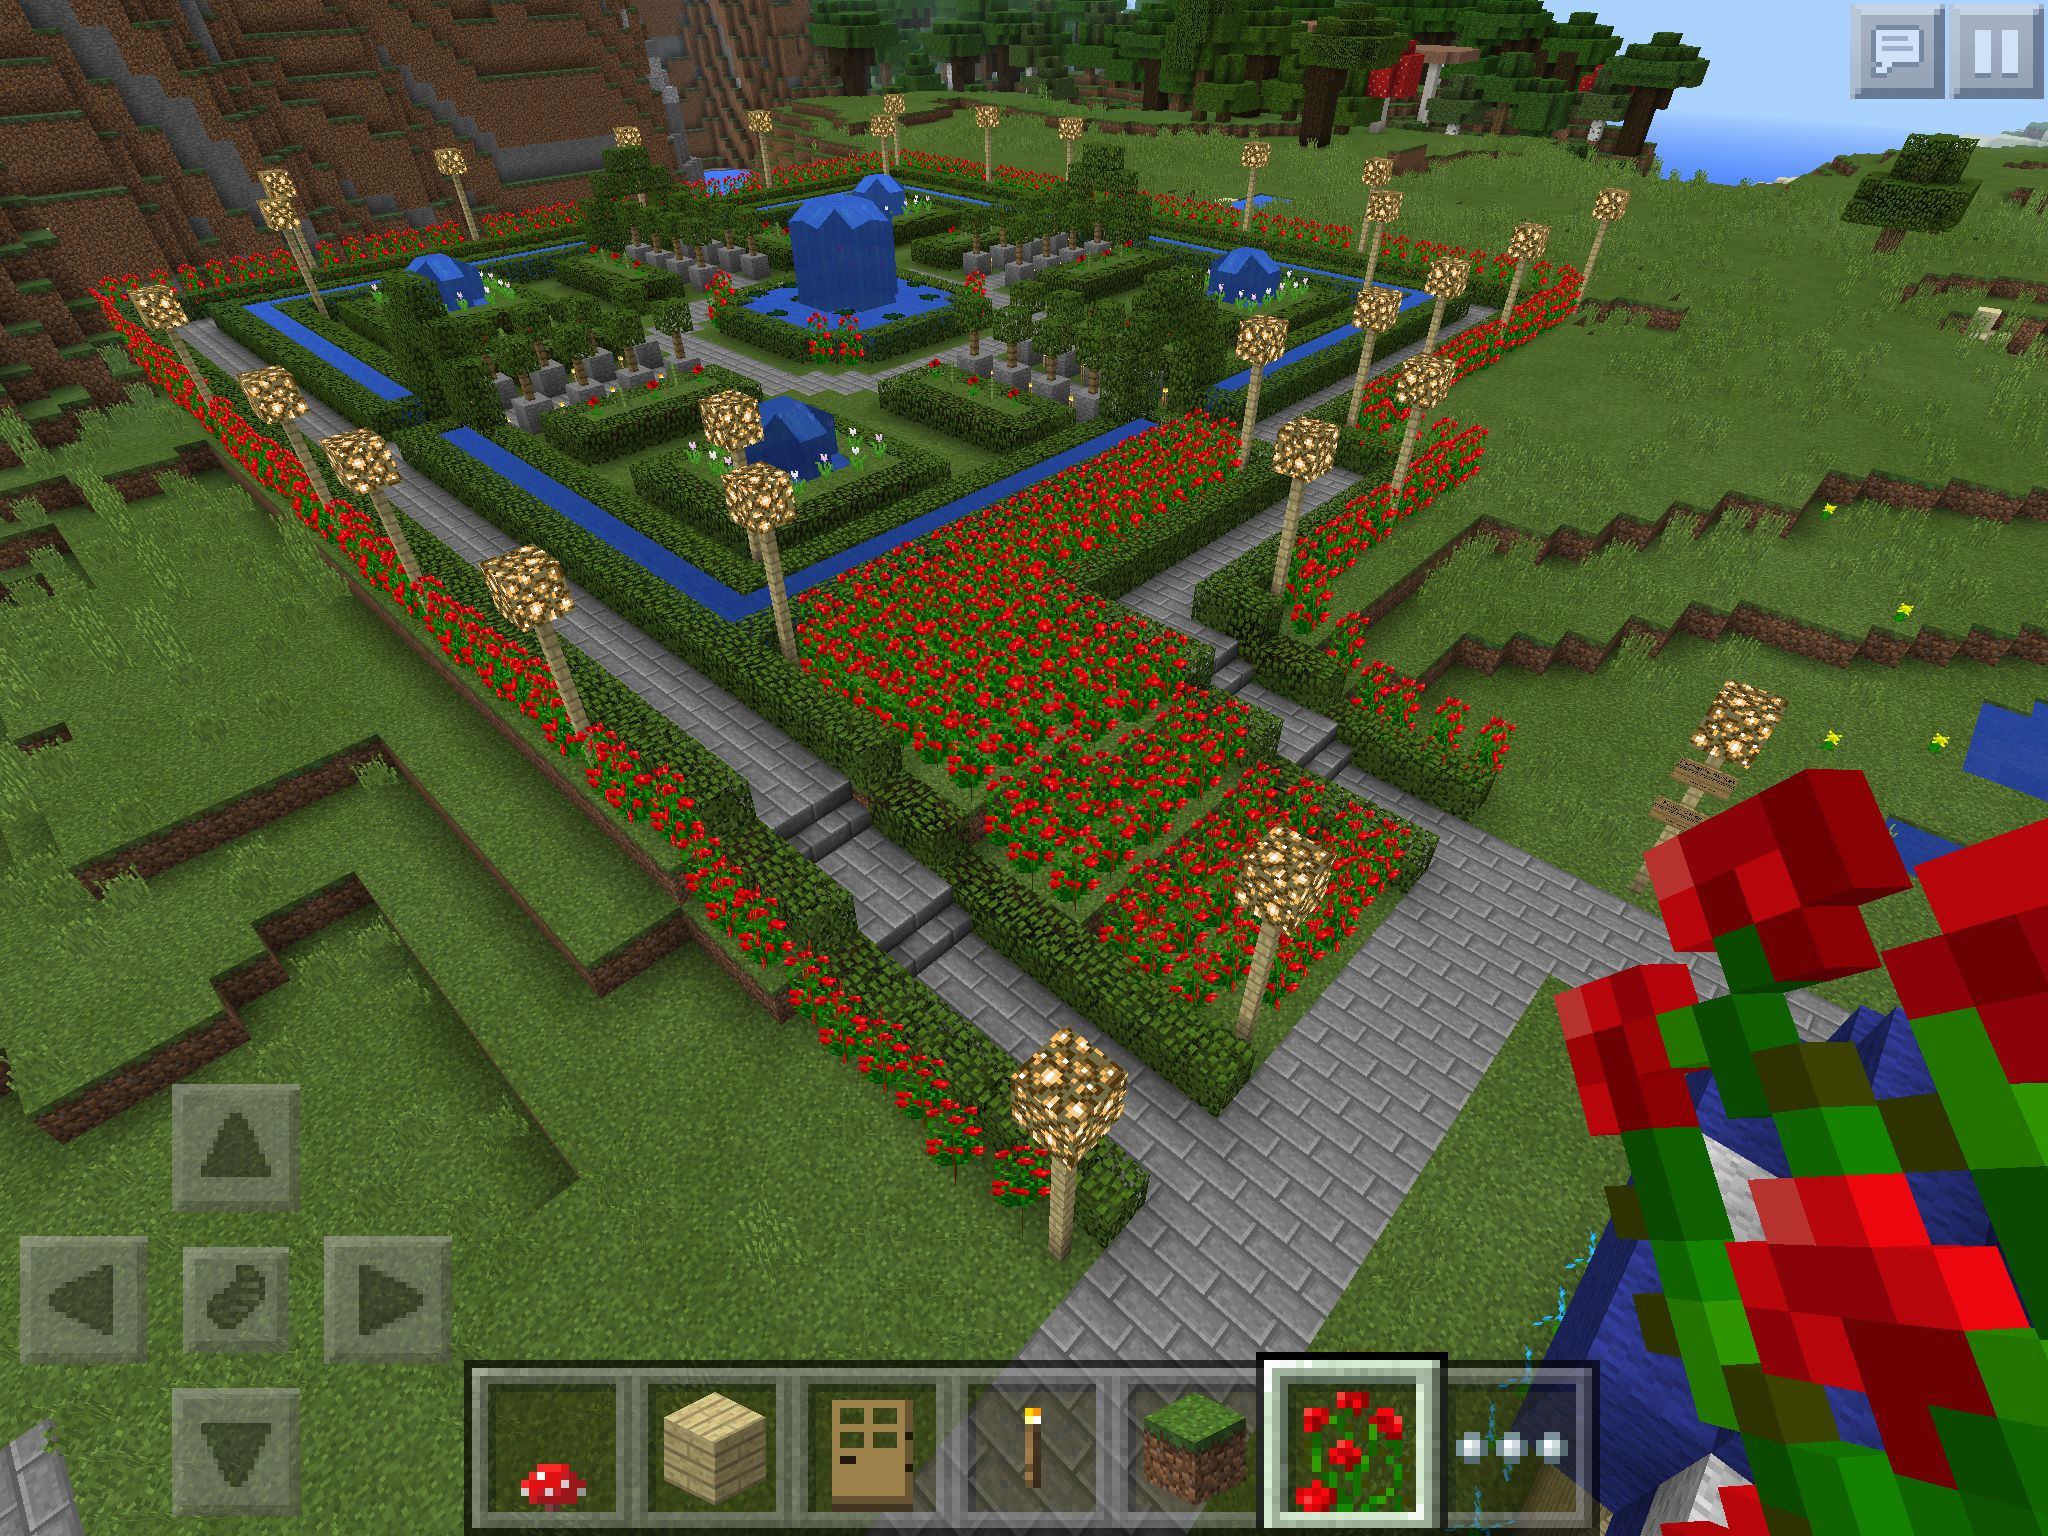 Minecraft cottage garden tutorial amazing simple minecraft garden japanese garden minecraft - Minecraft garden designs ...